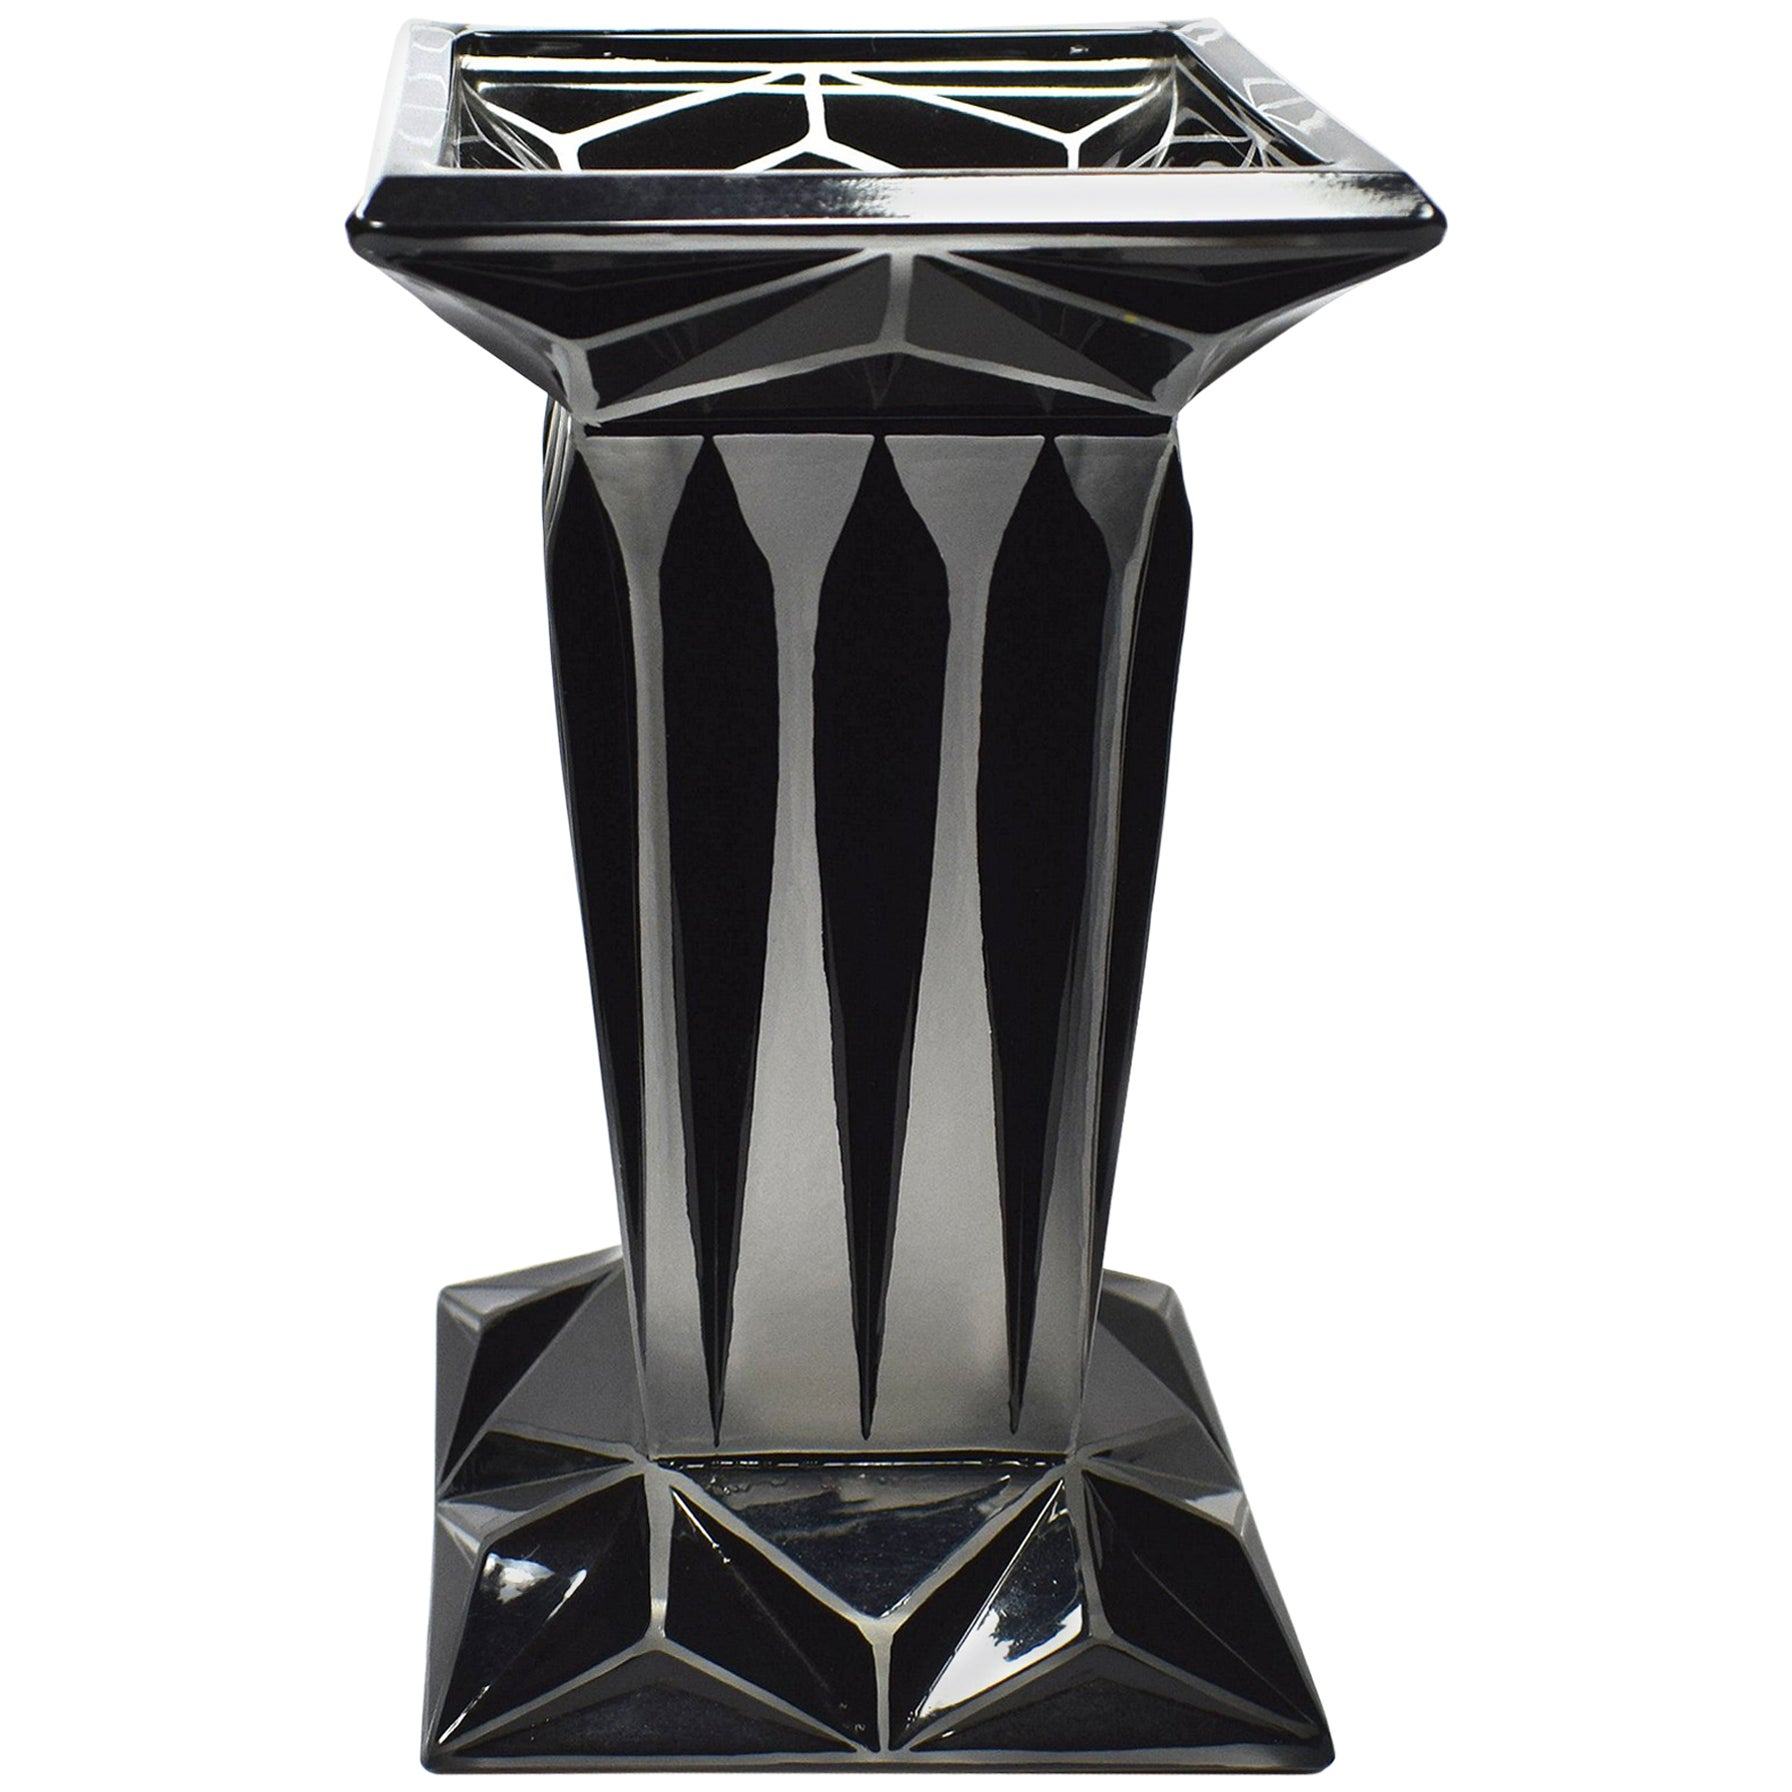 Art Deco Geometric Enamel Glass Vase by Karl Palda